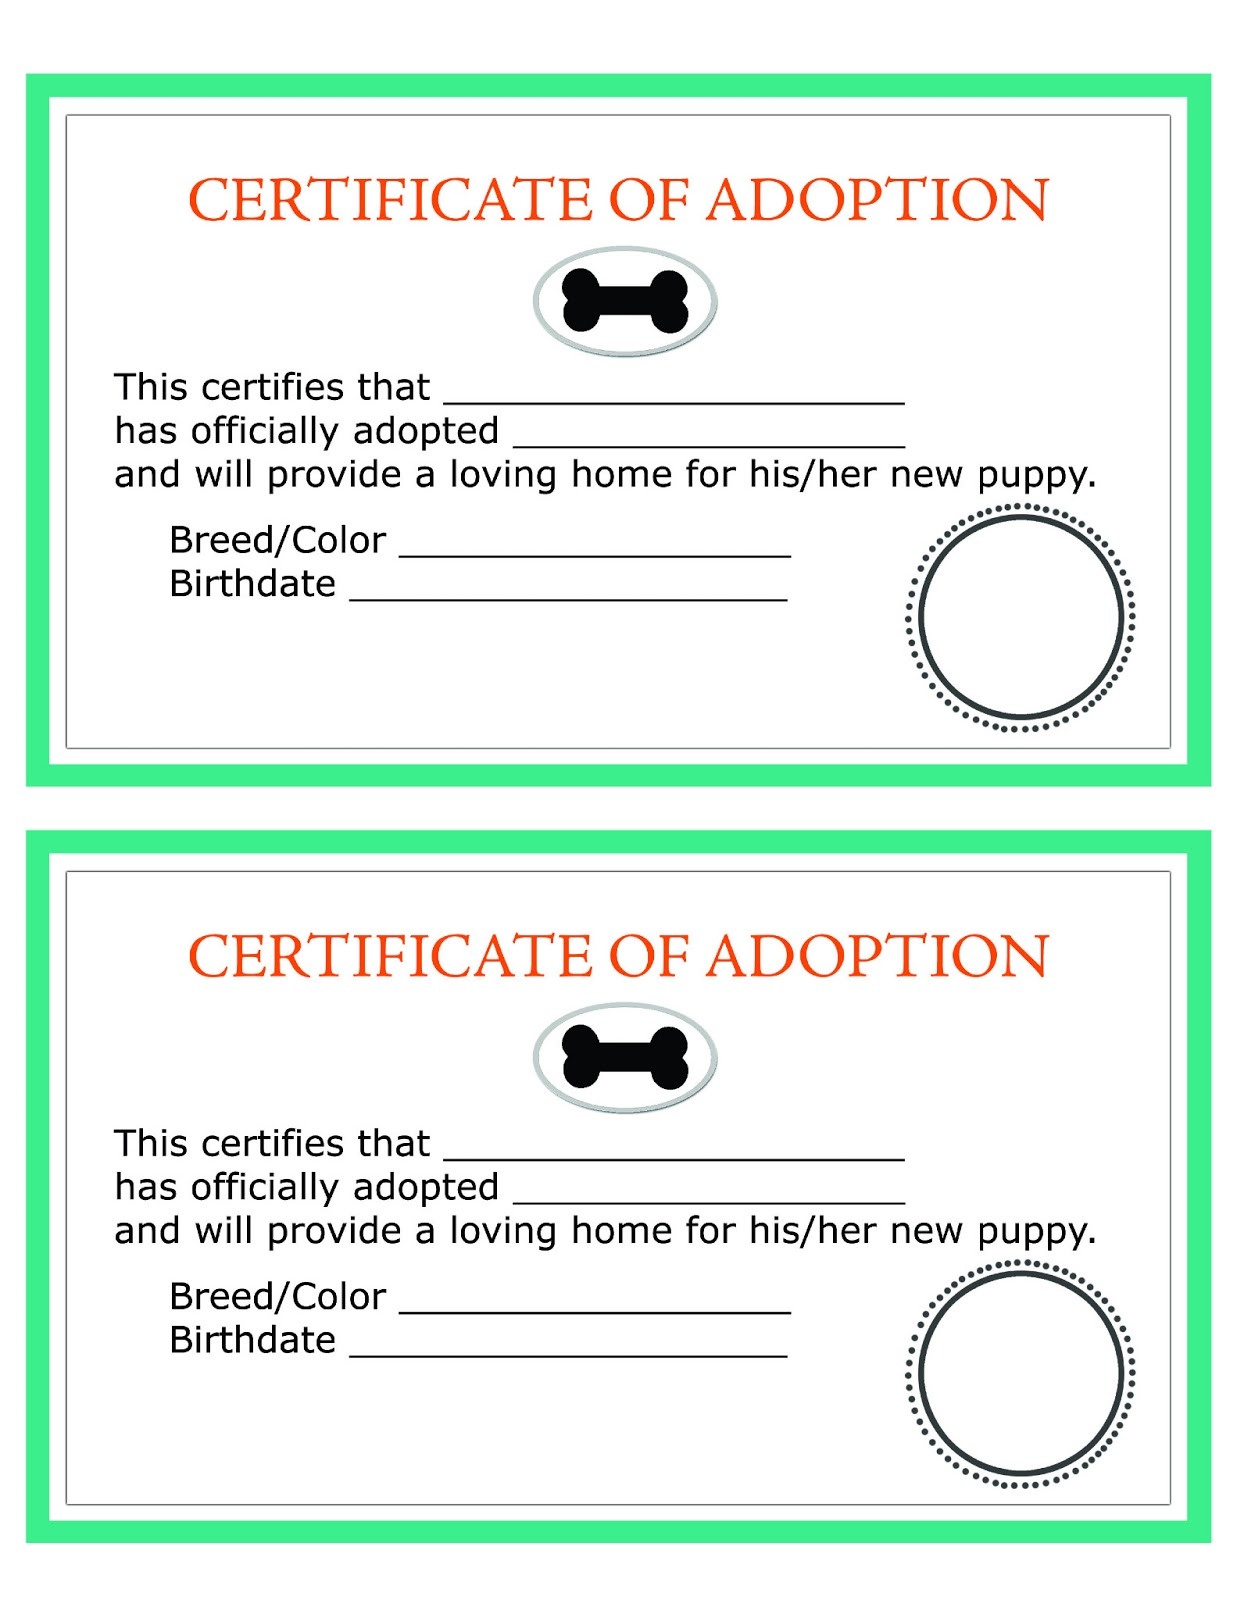 Adoption essays